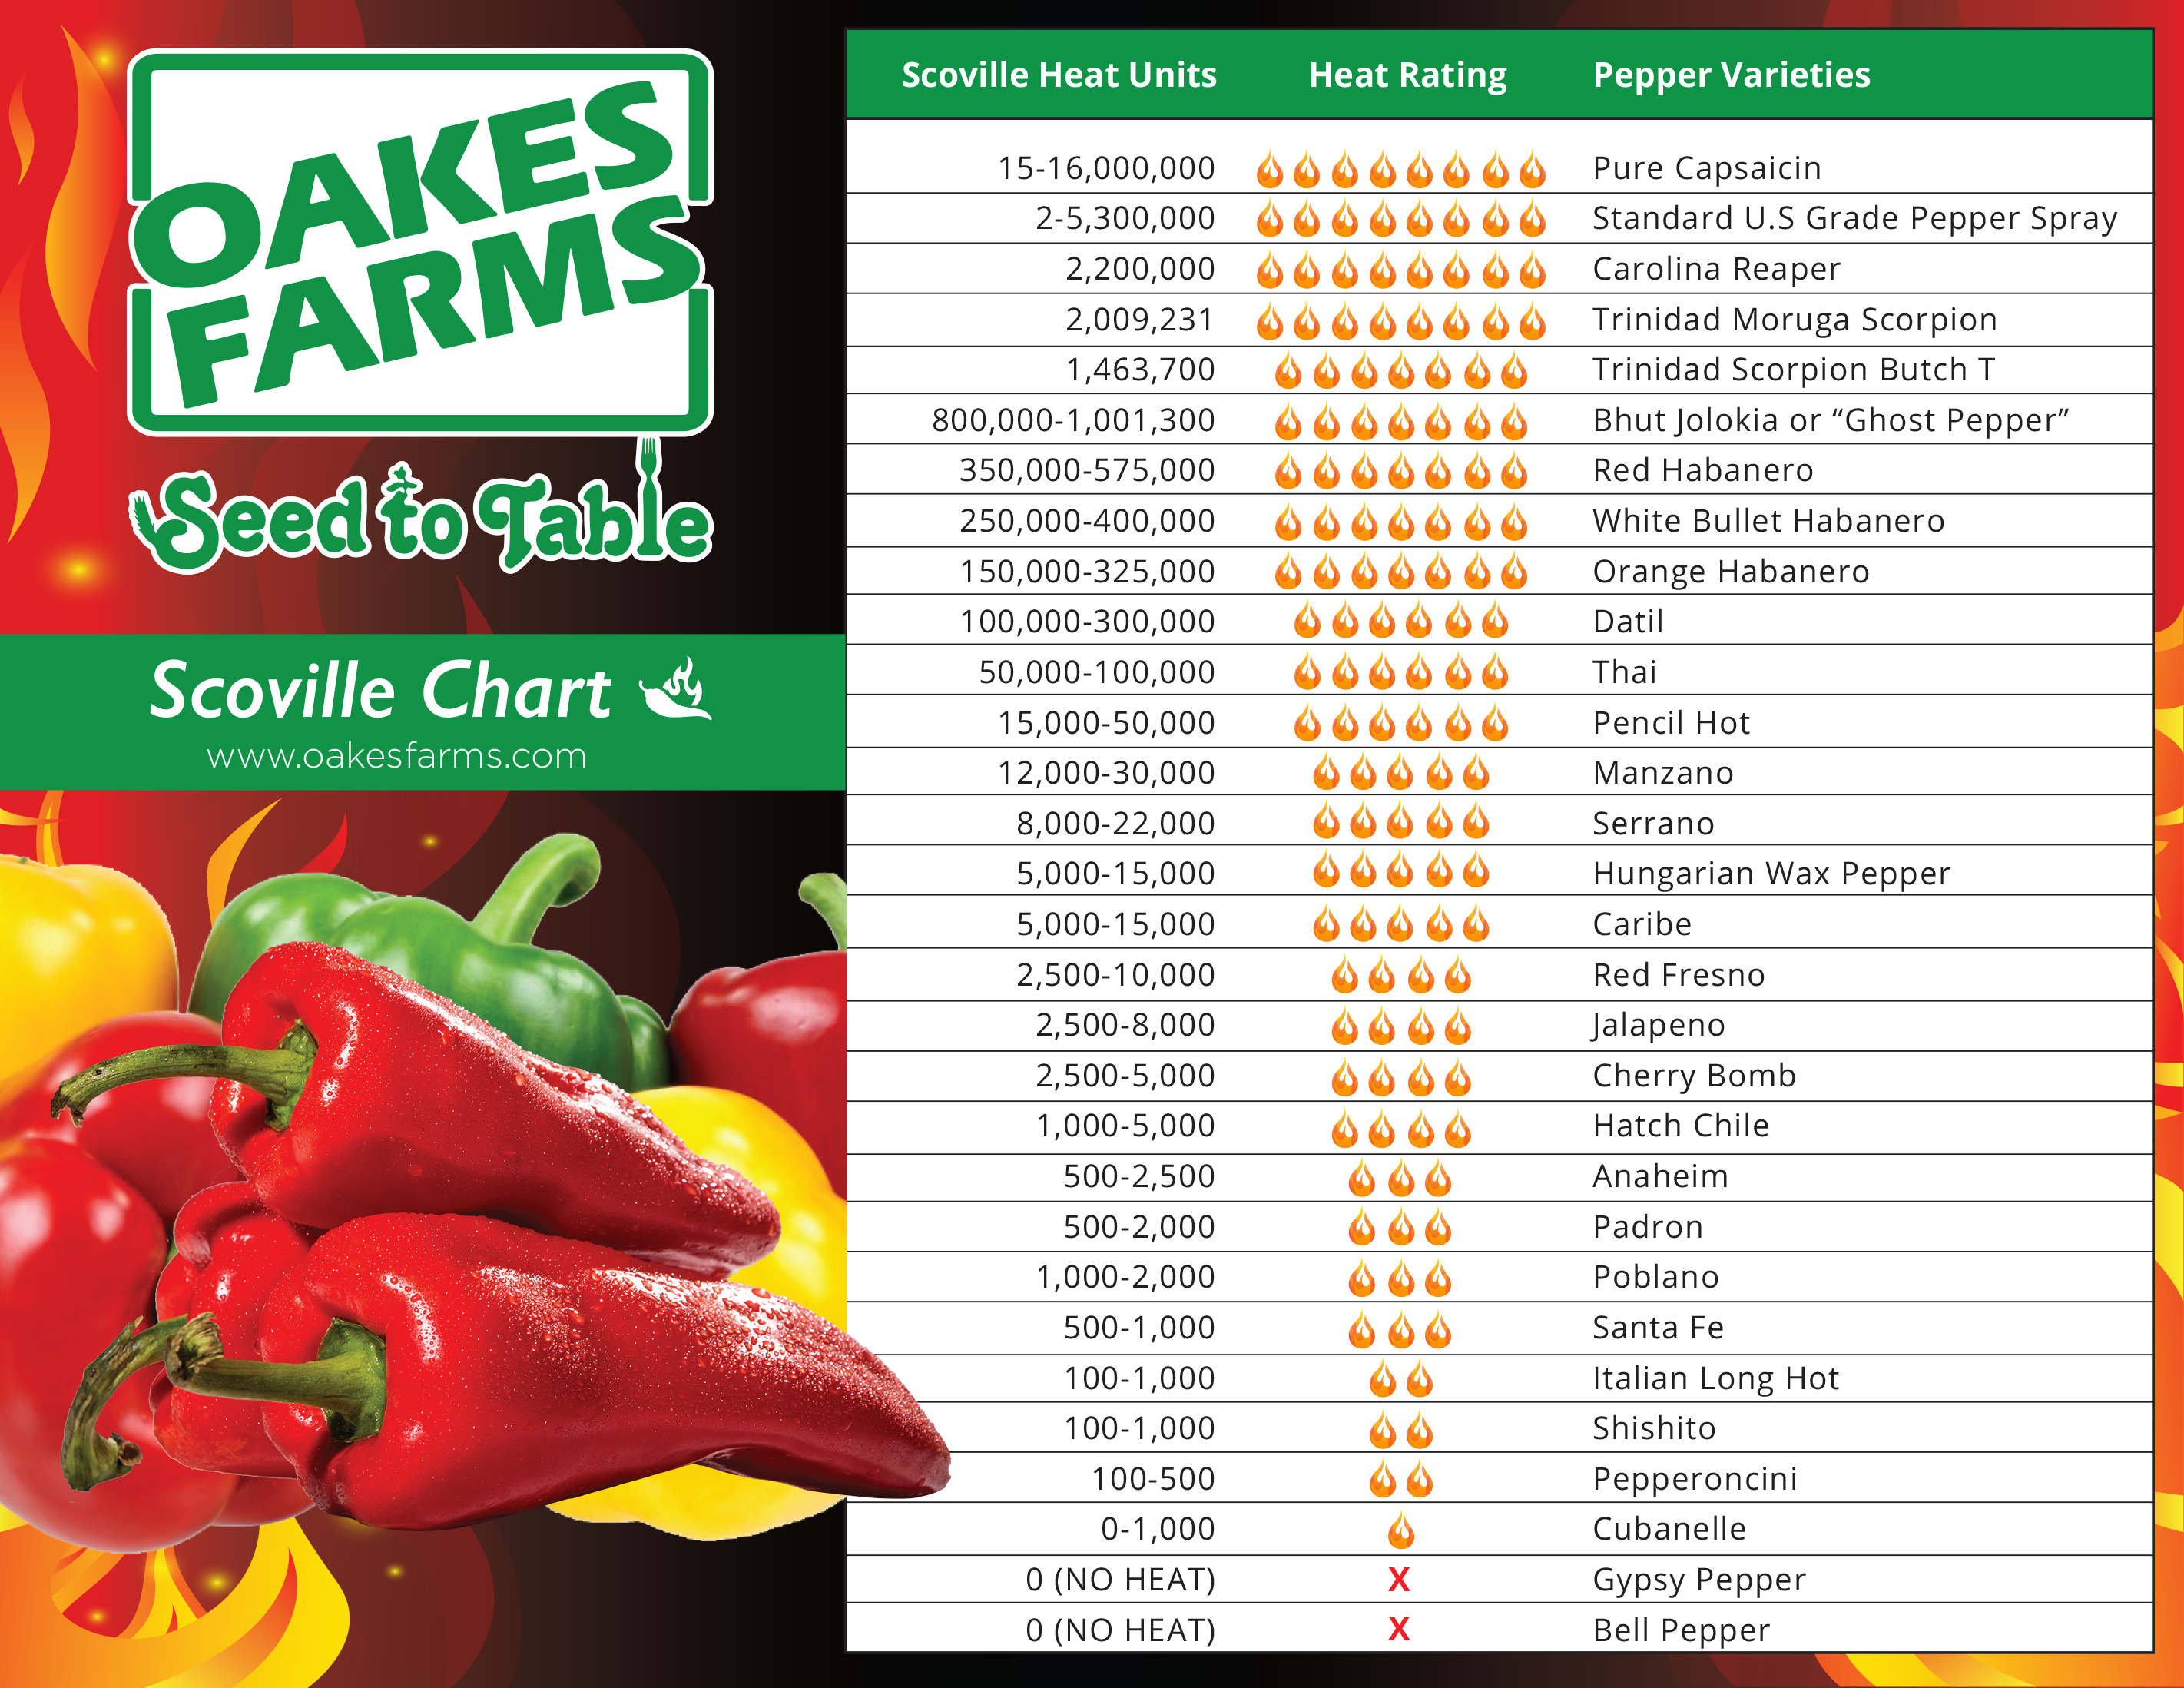 Oakes Farms Scoville Chart